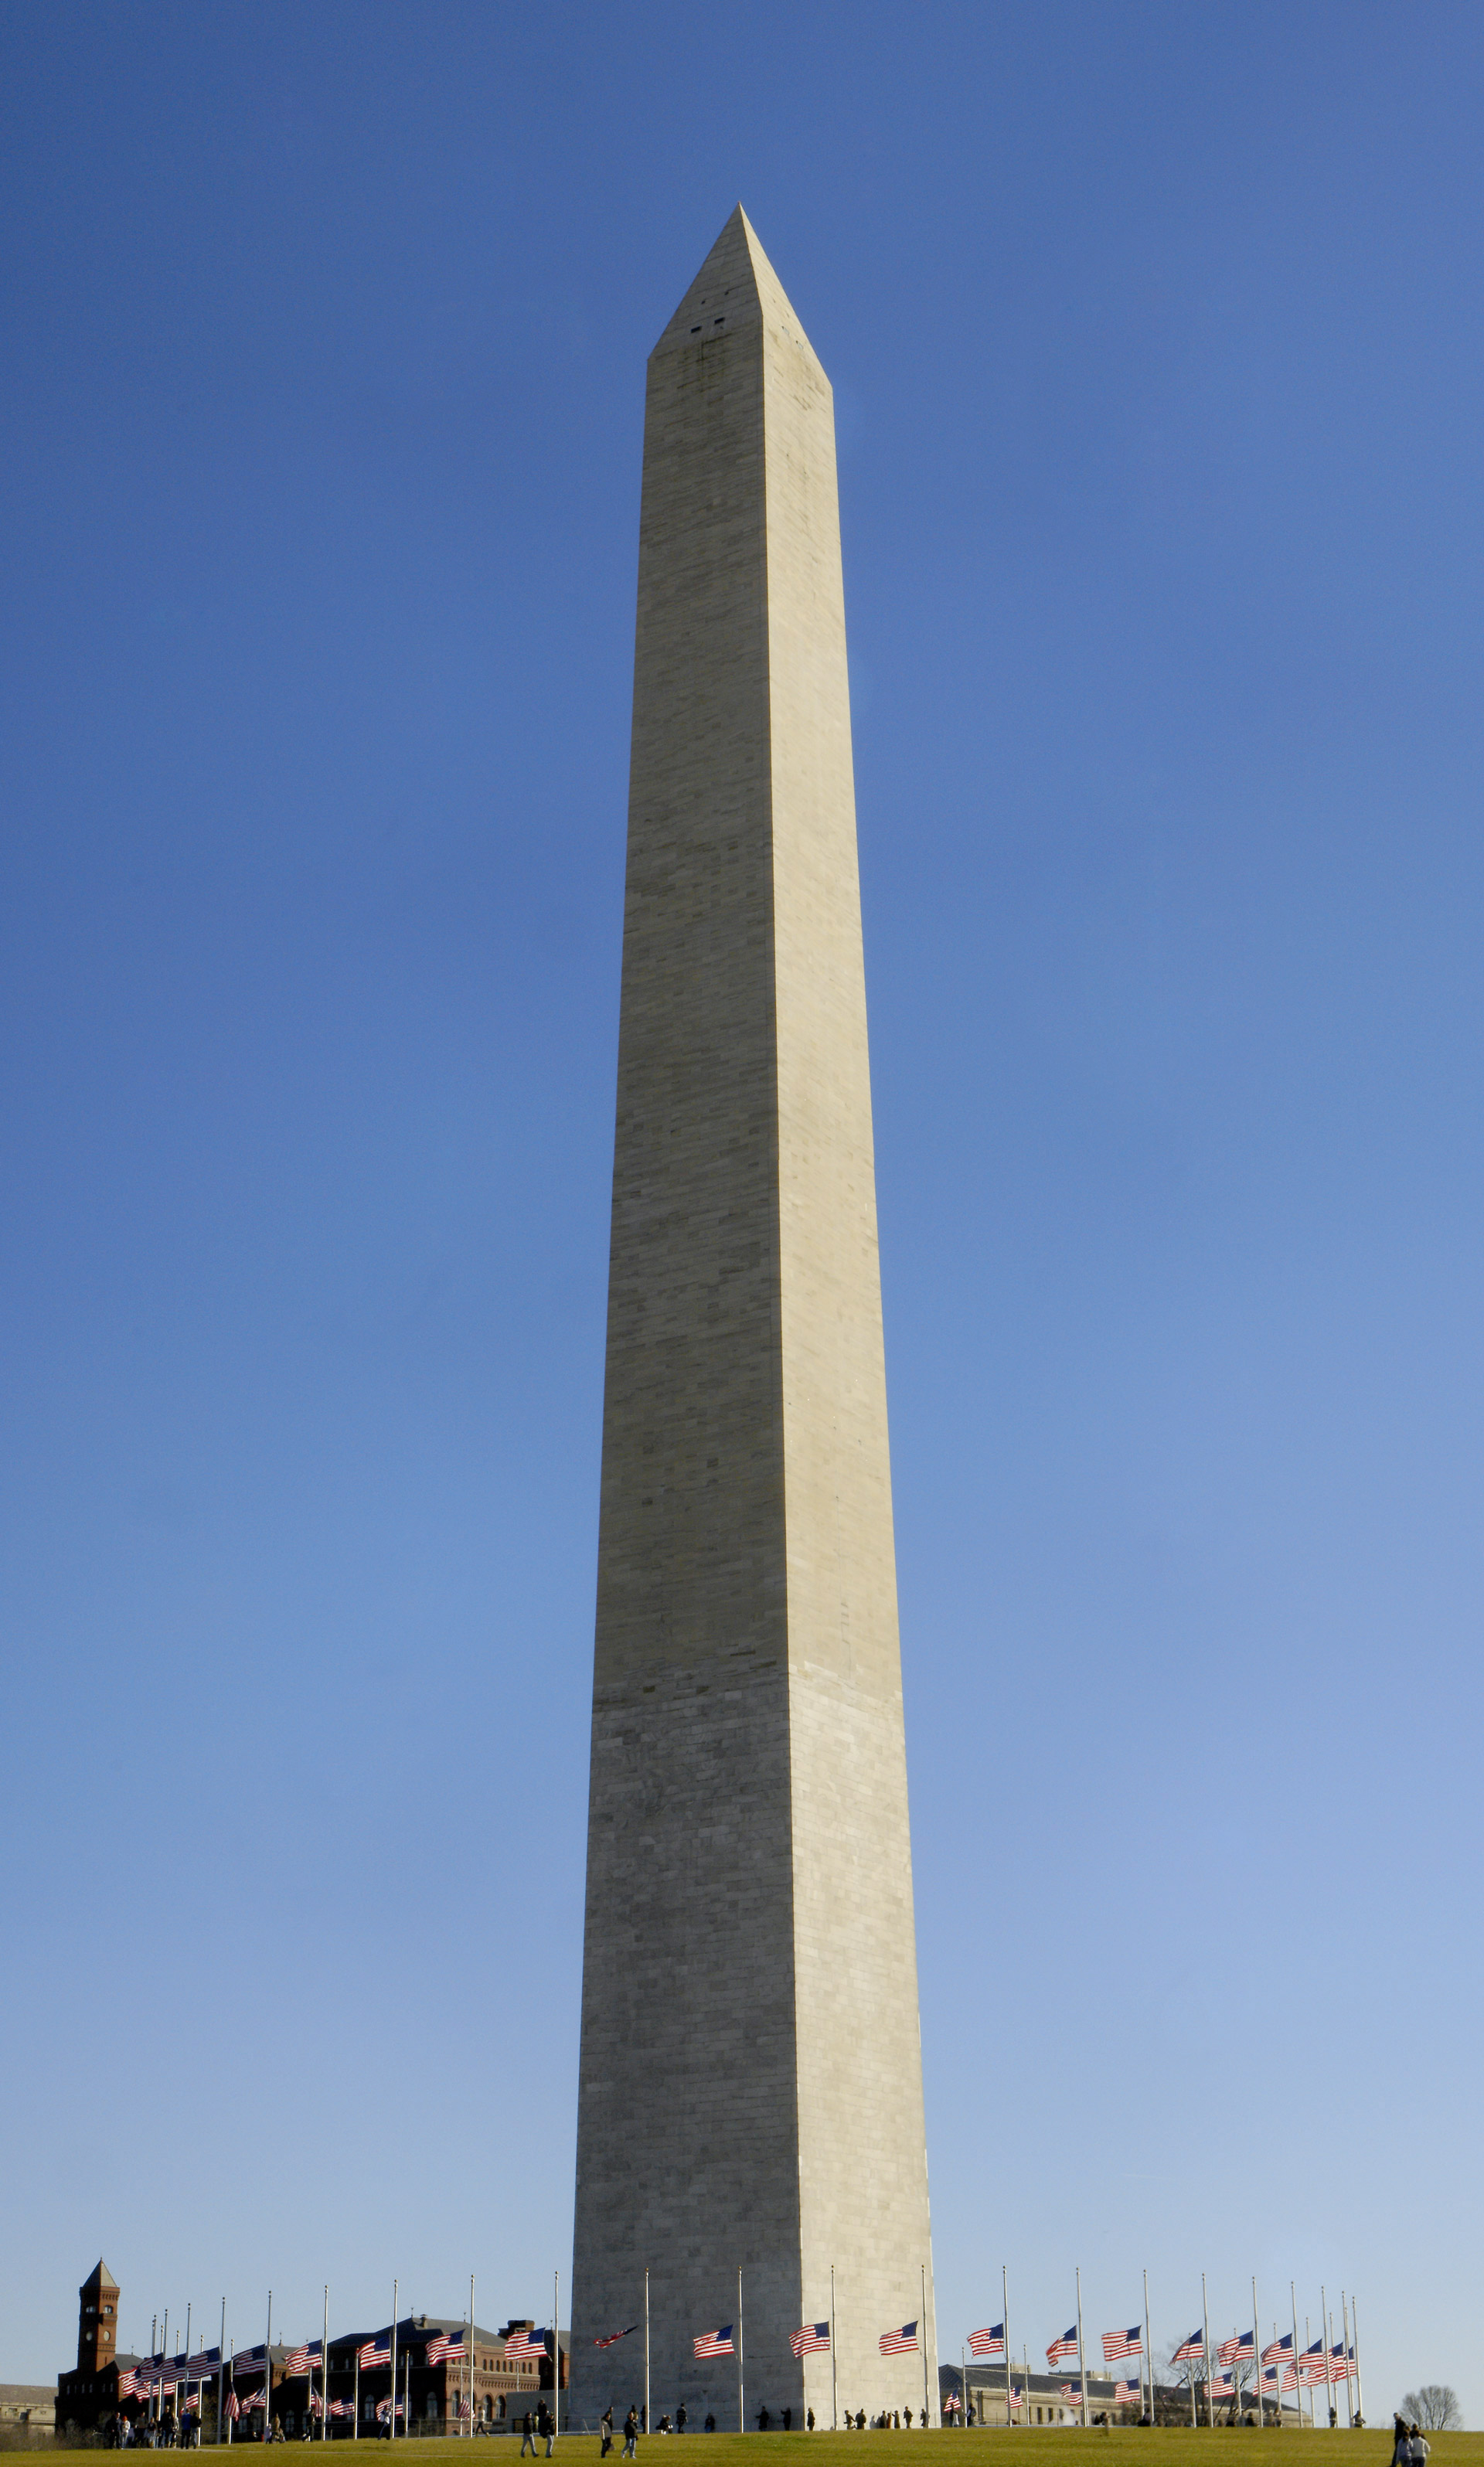 File:Washington Monument Re.jpg - Wikimedia Commons